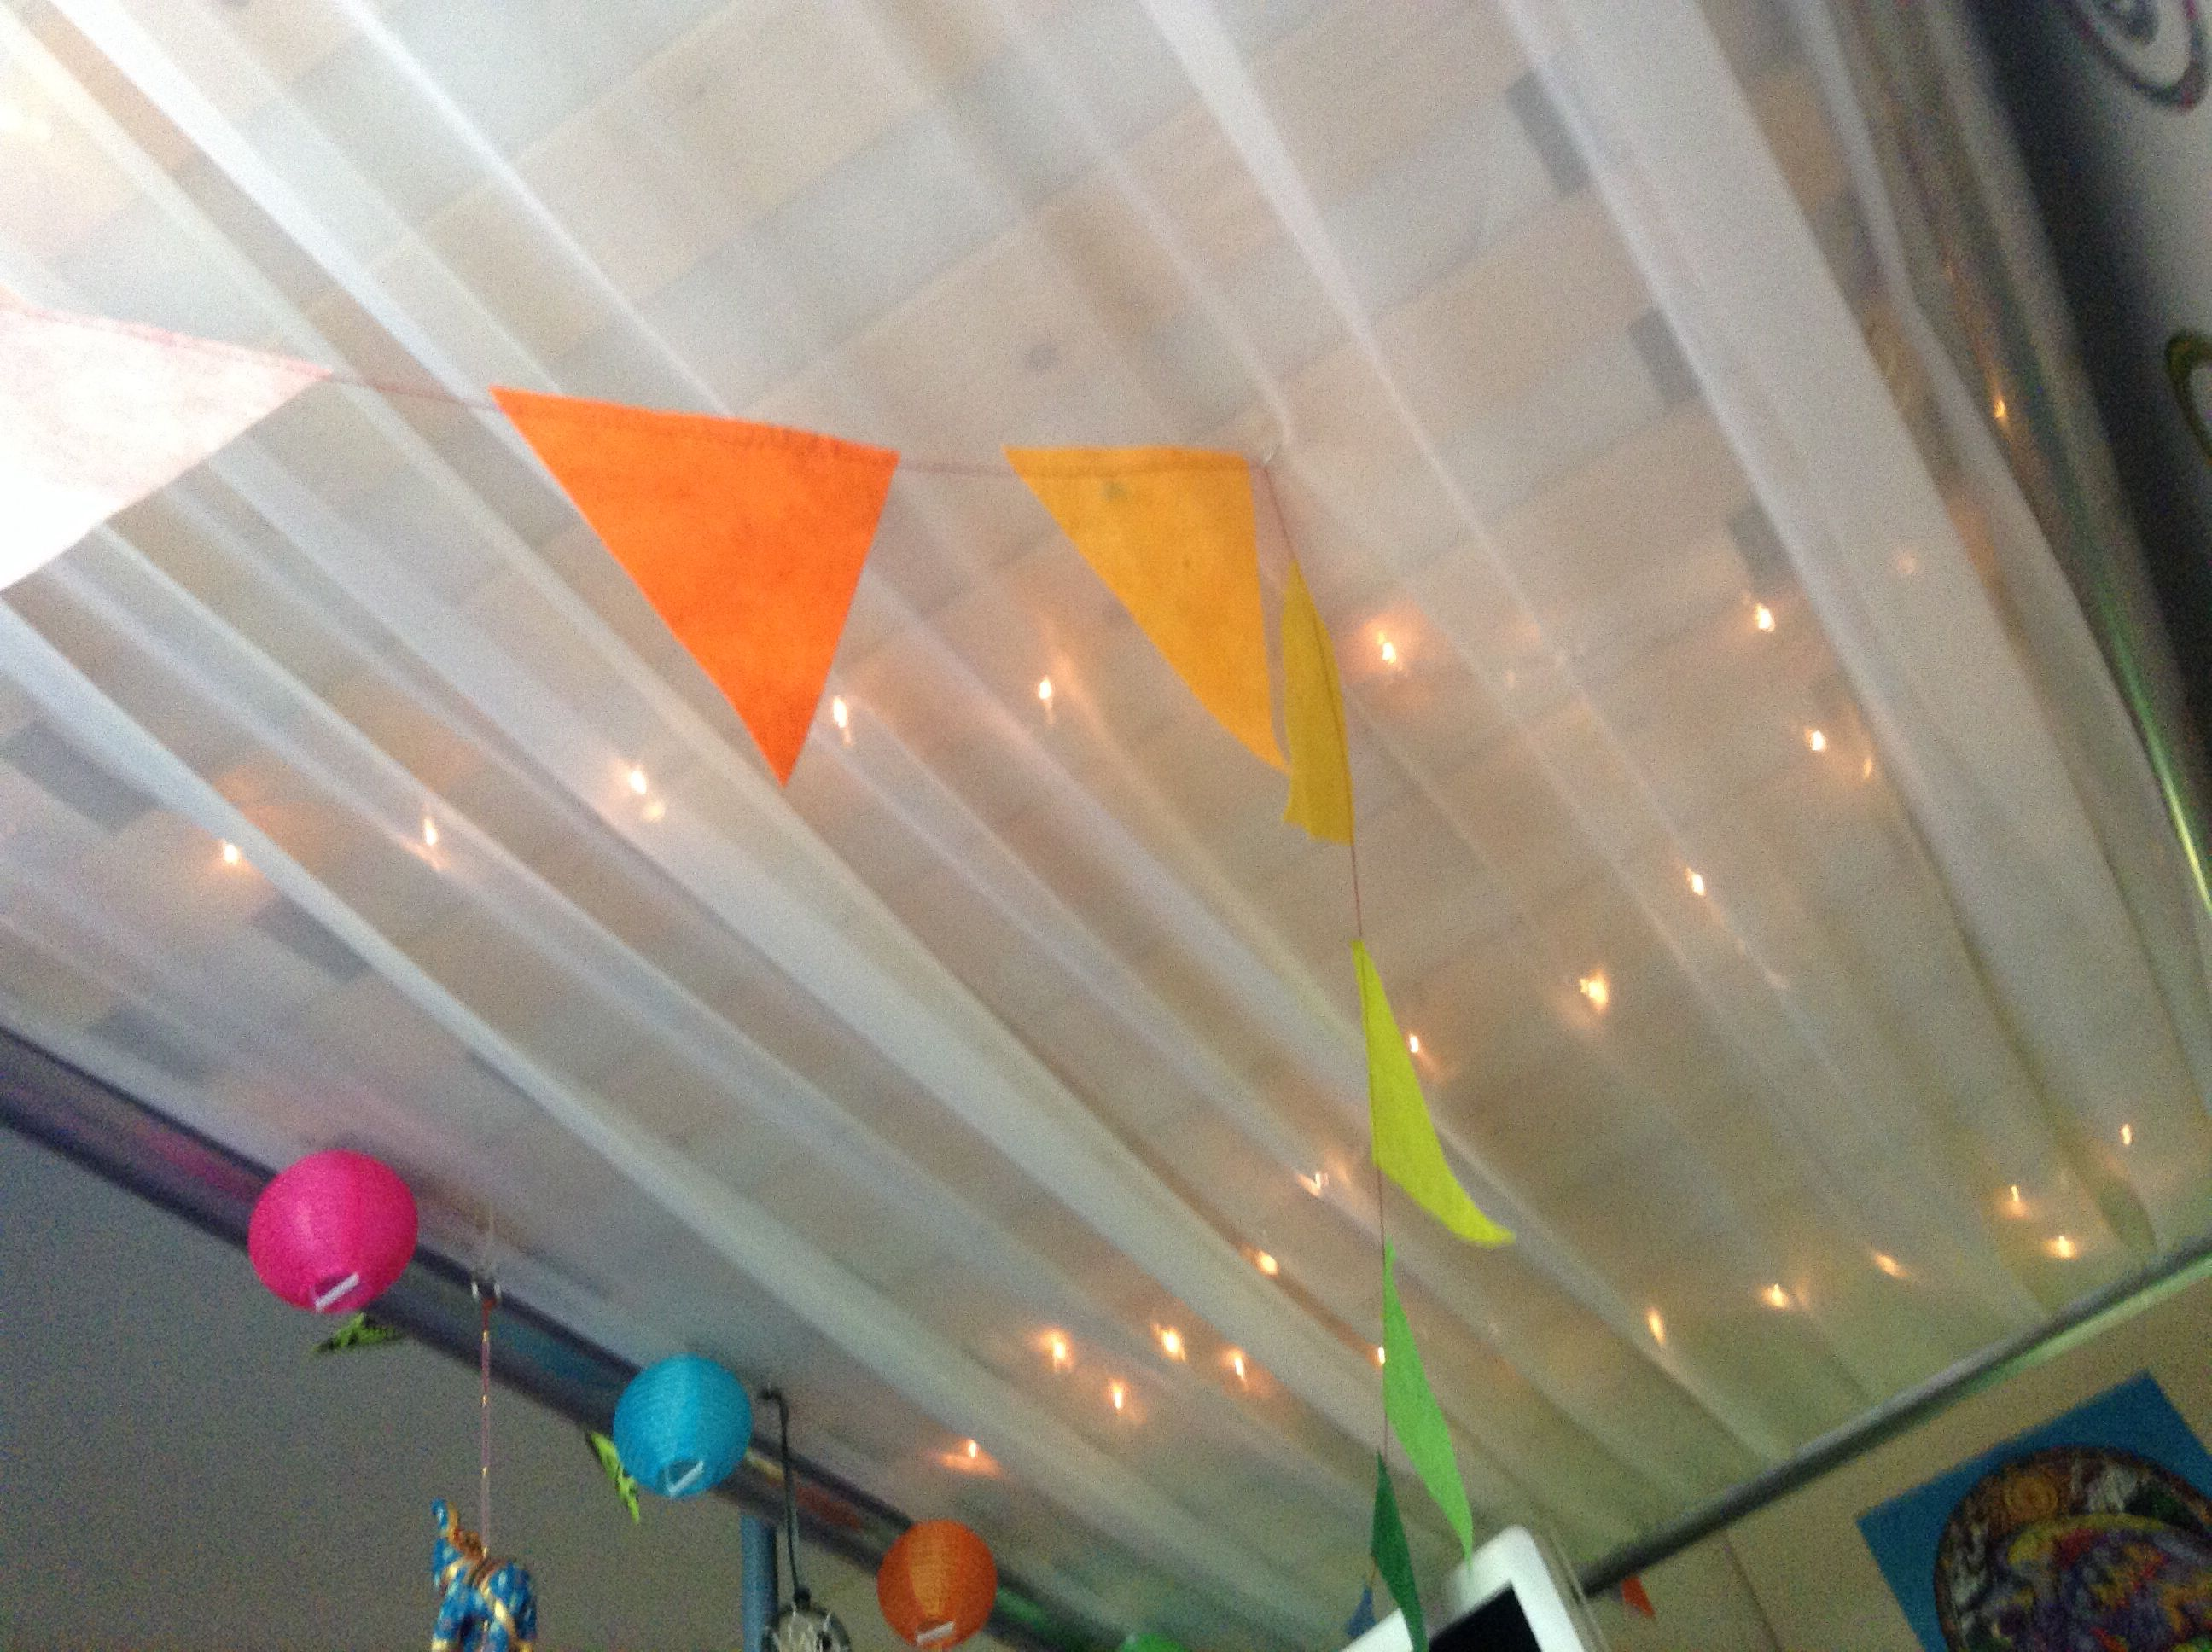 Loft bed lighting ideas  Diy bunk Bed lights you will need a box of fairy lights